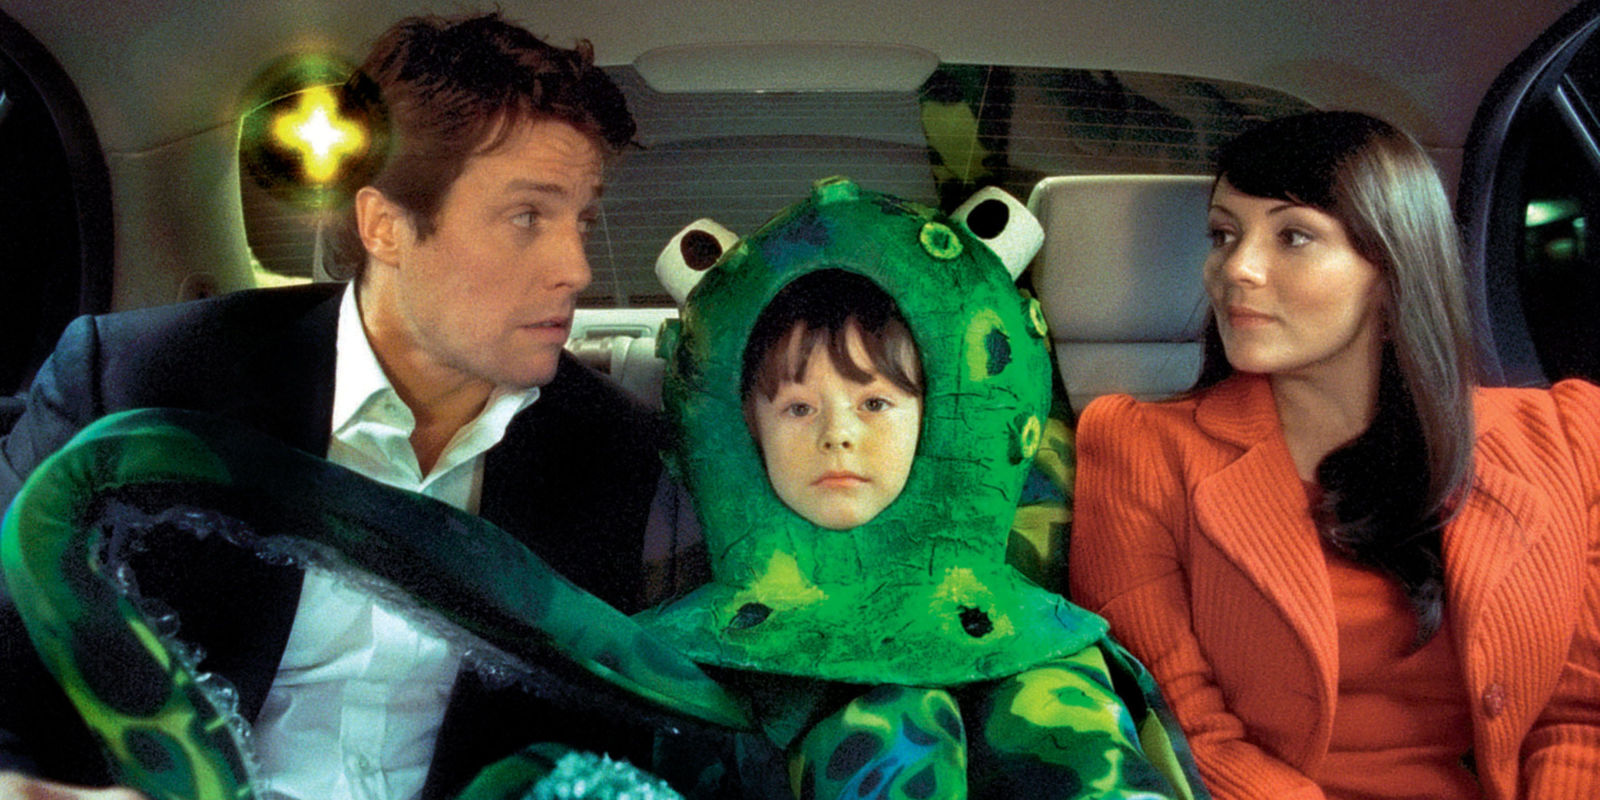 What Does The Octopus Boy From Love Actually Look Like Now